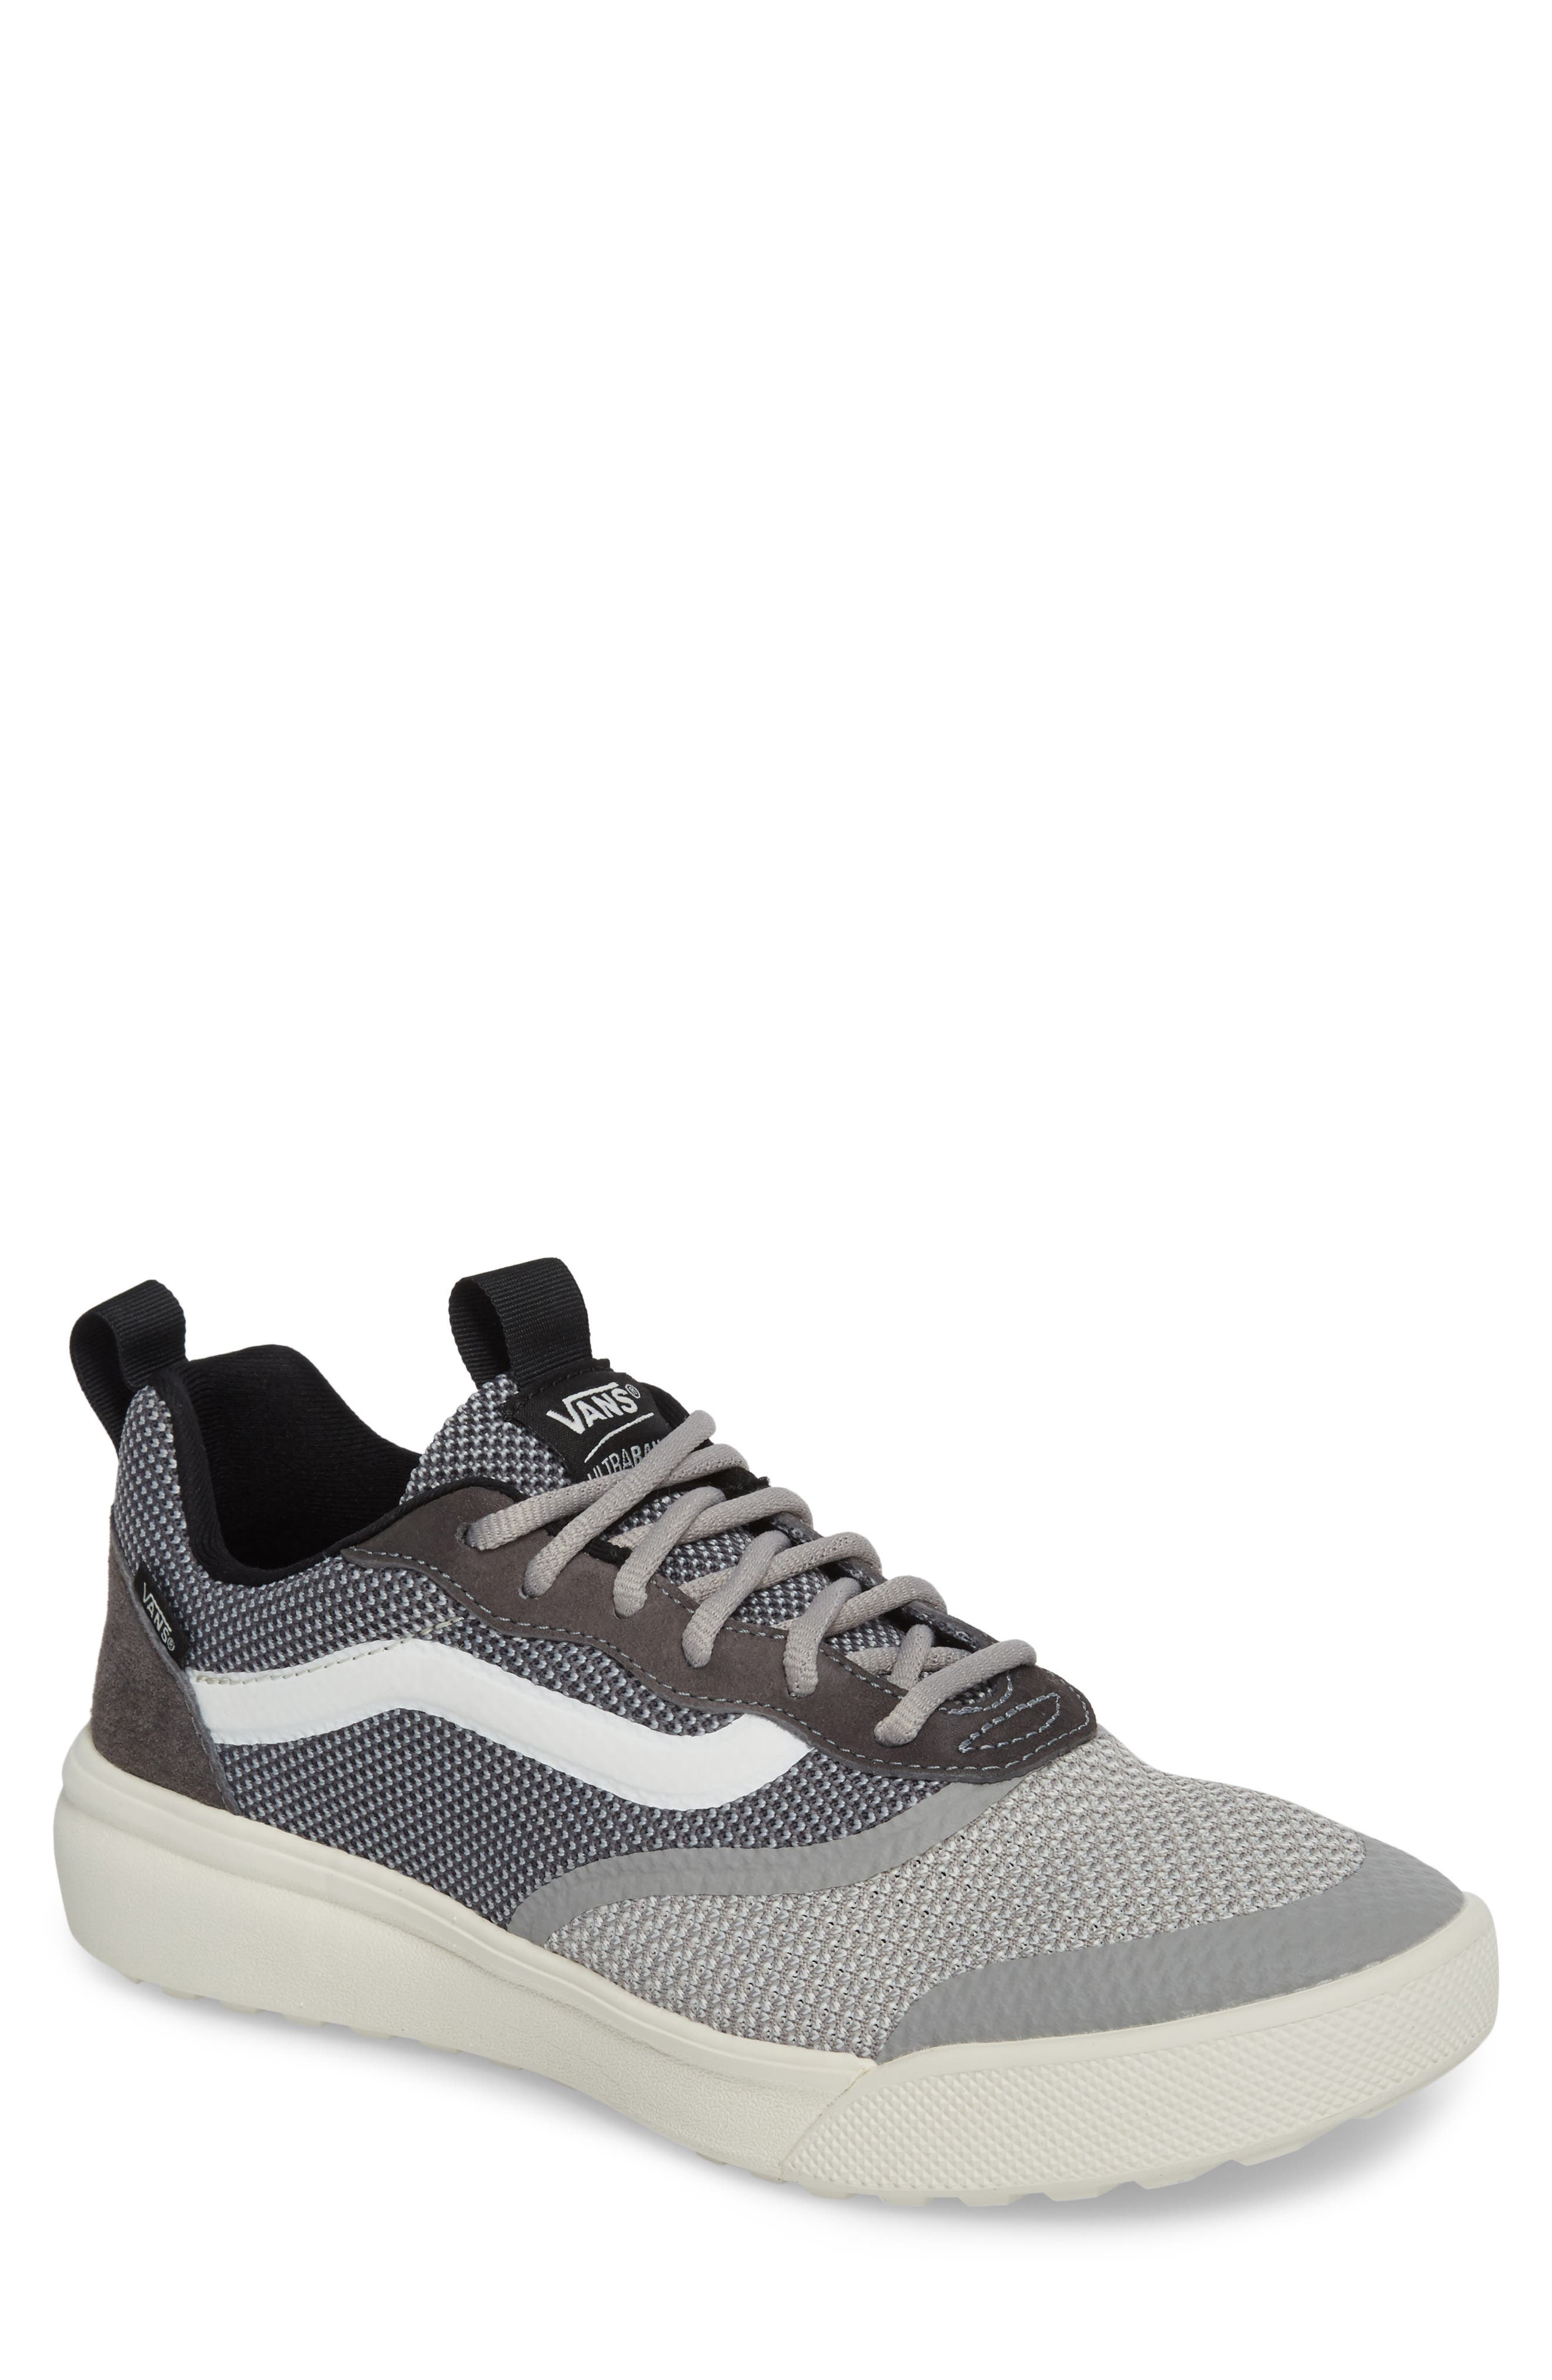 UltraRange DX Low Top Sneaker,                             Main thumbnail 1, color,                             Pewter/ Drizzle